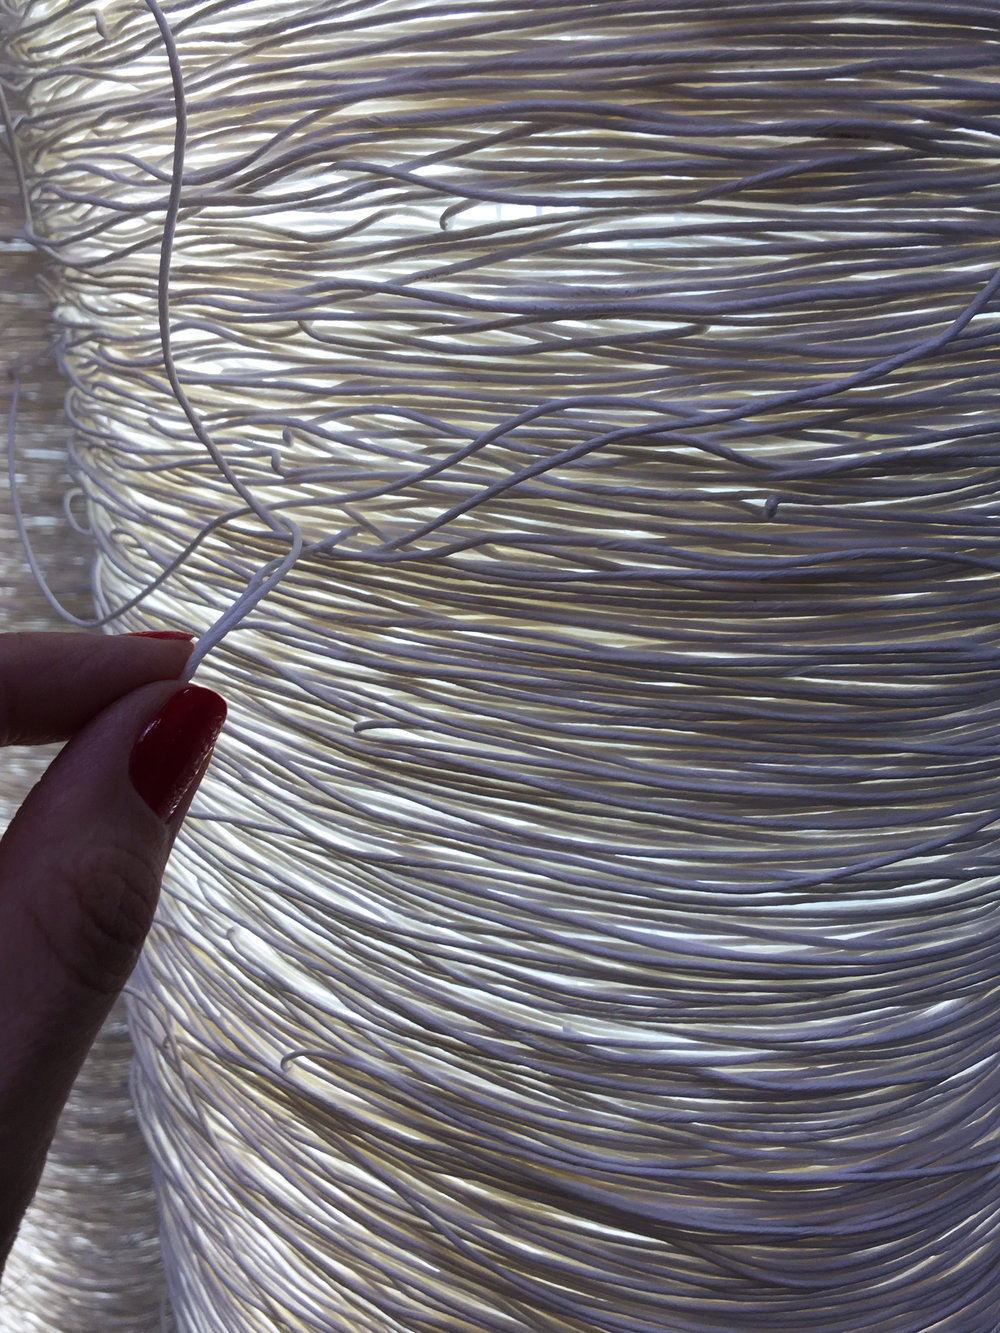 Touching the Japanese cord used for one of the sculptural lighting design by Arturo Alvarez.